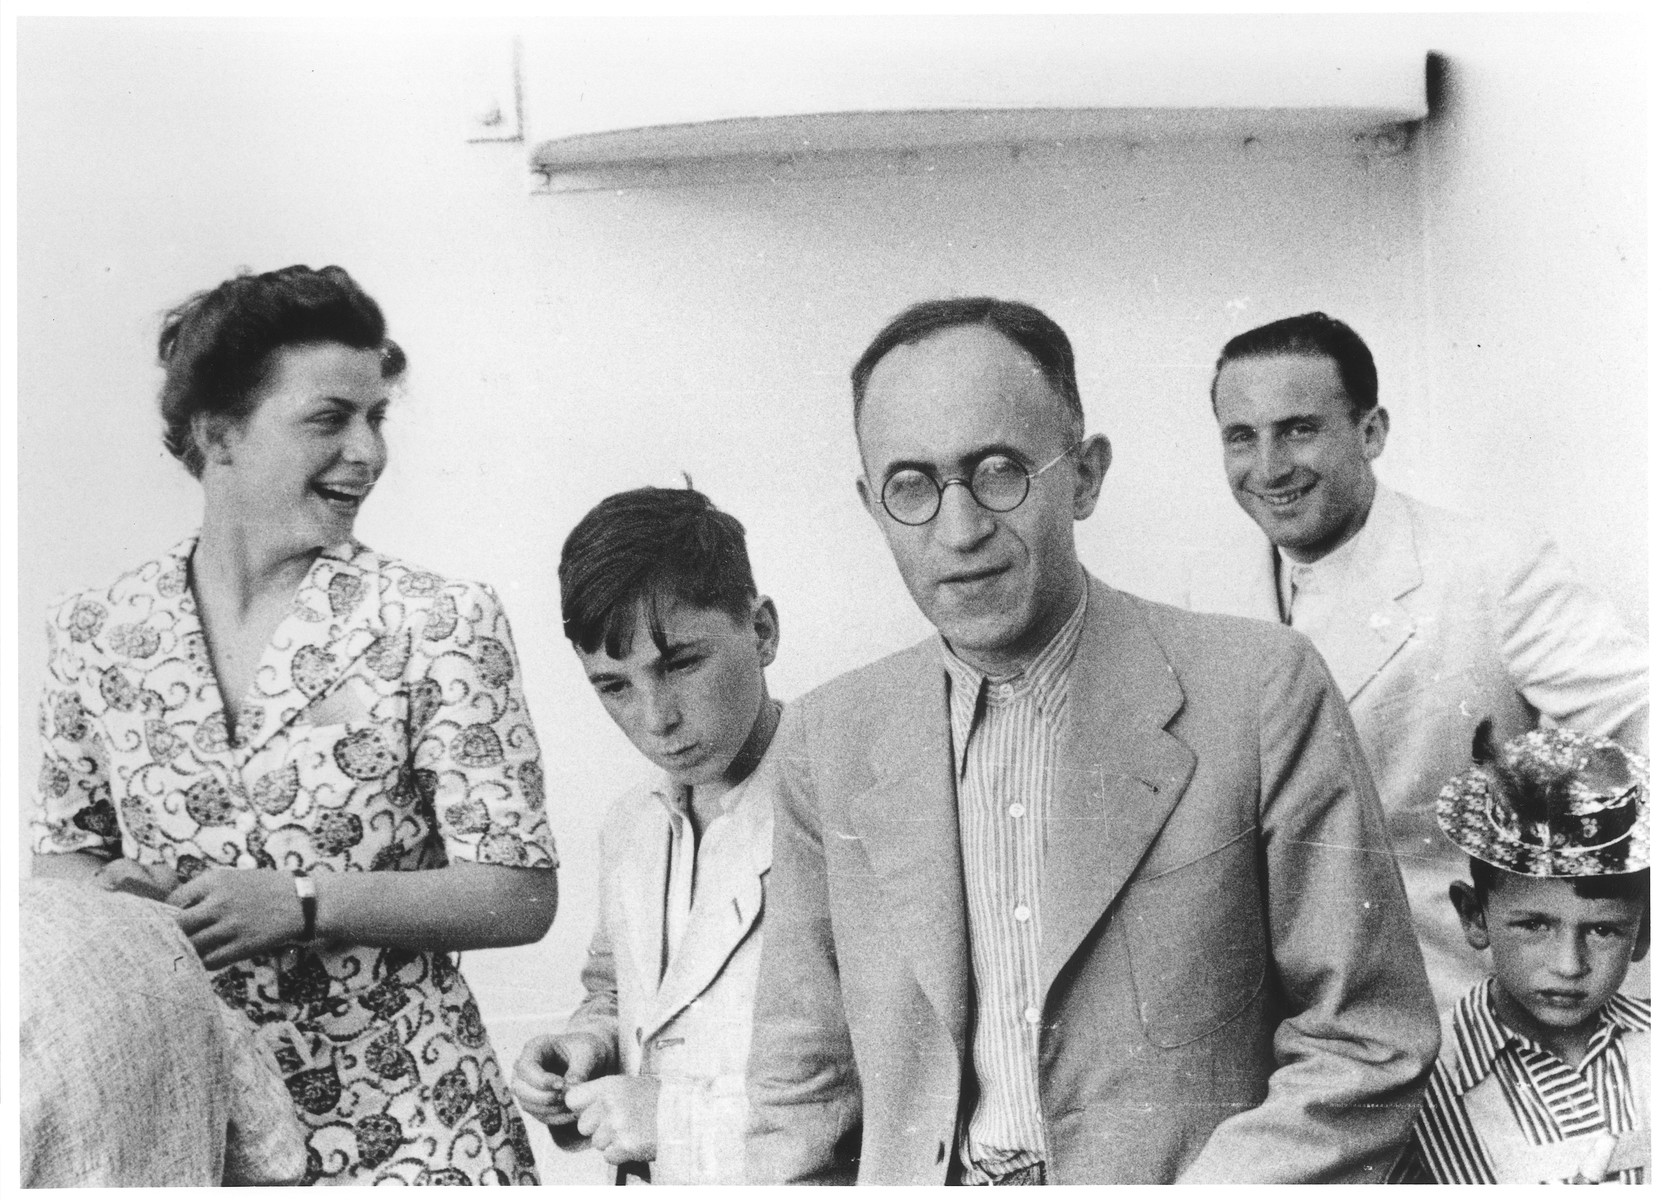 Passengers on the deck of the MS St. Louis.    Pictured in the foreground is Ernst Vendig, a member of the passenger committee.